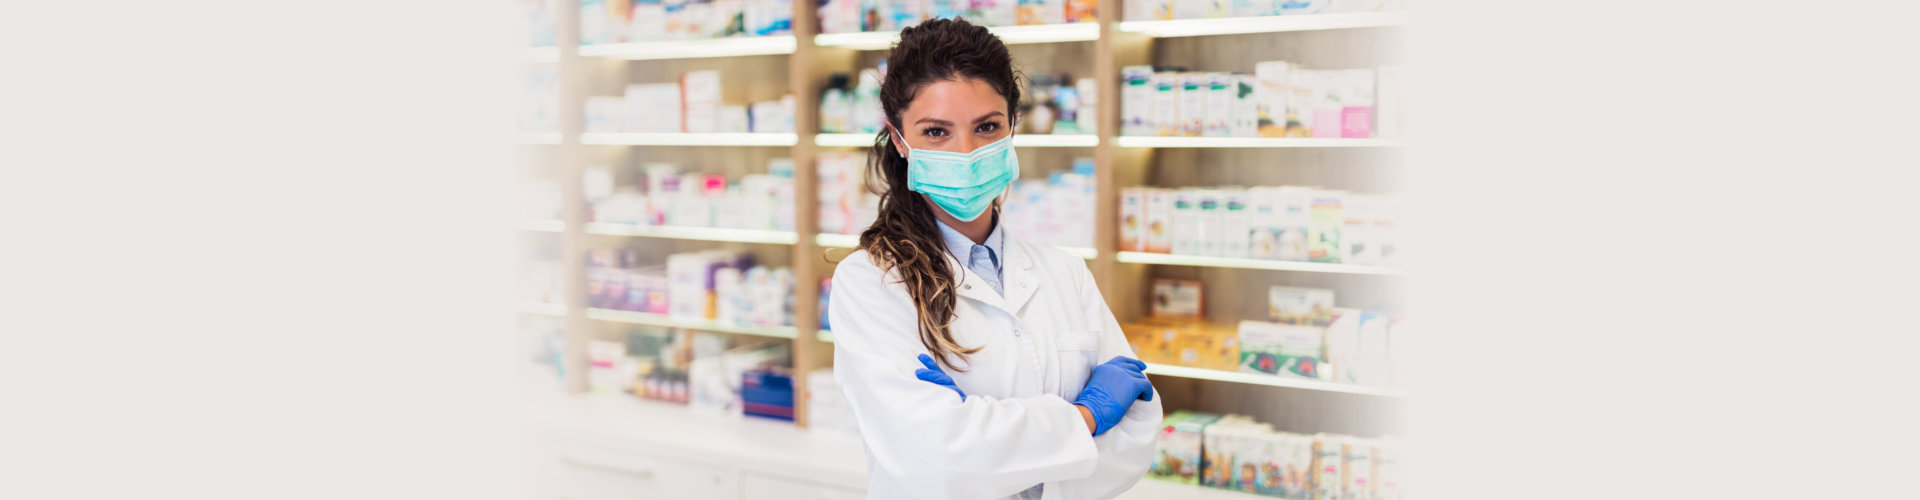 Female pharmacist with protective mask on her face working at pharmacy